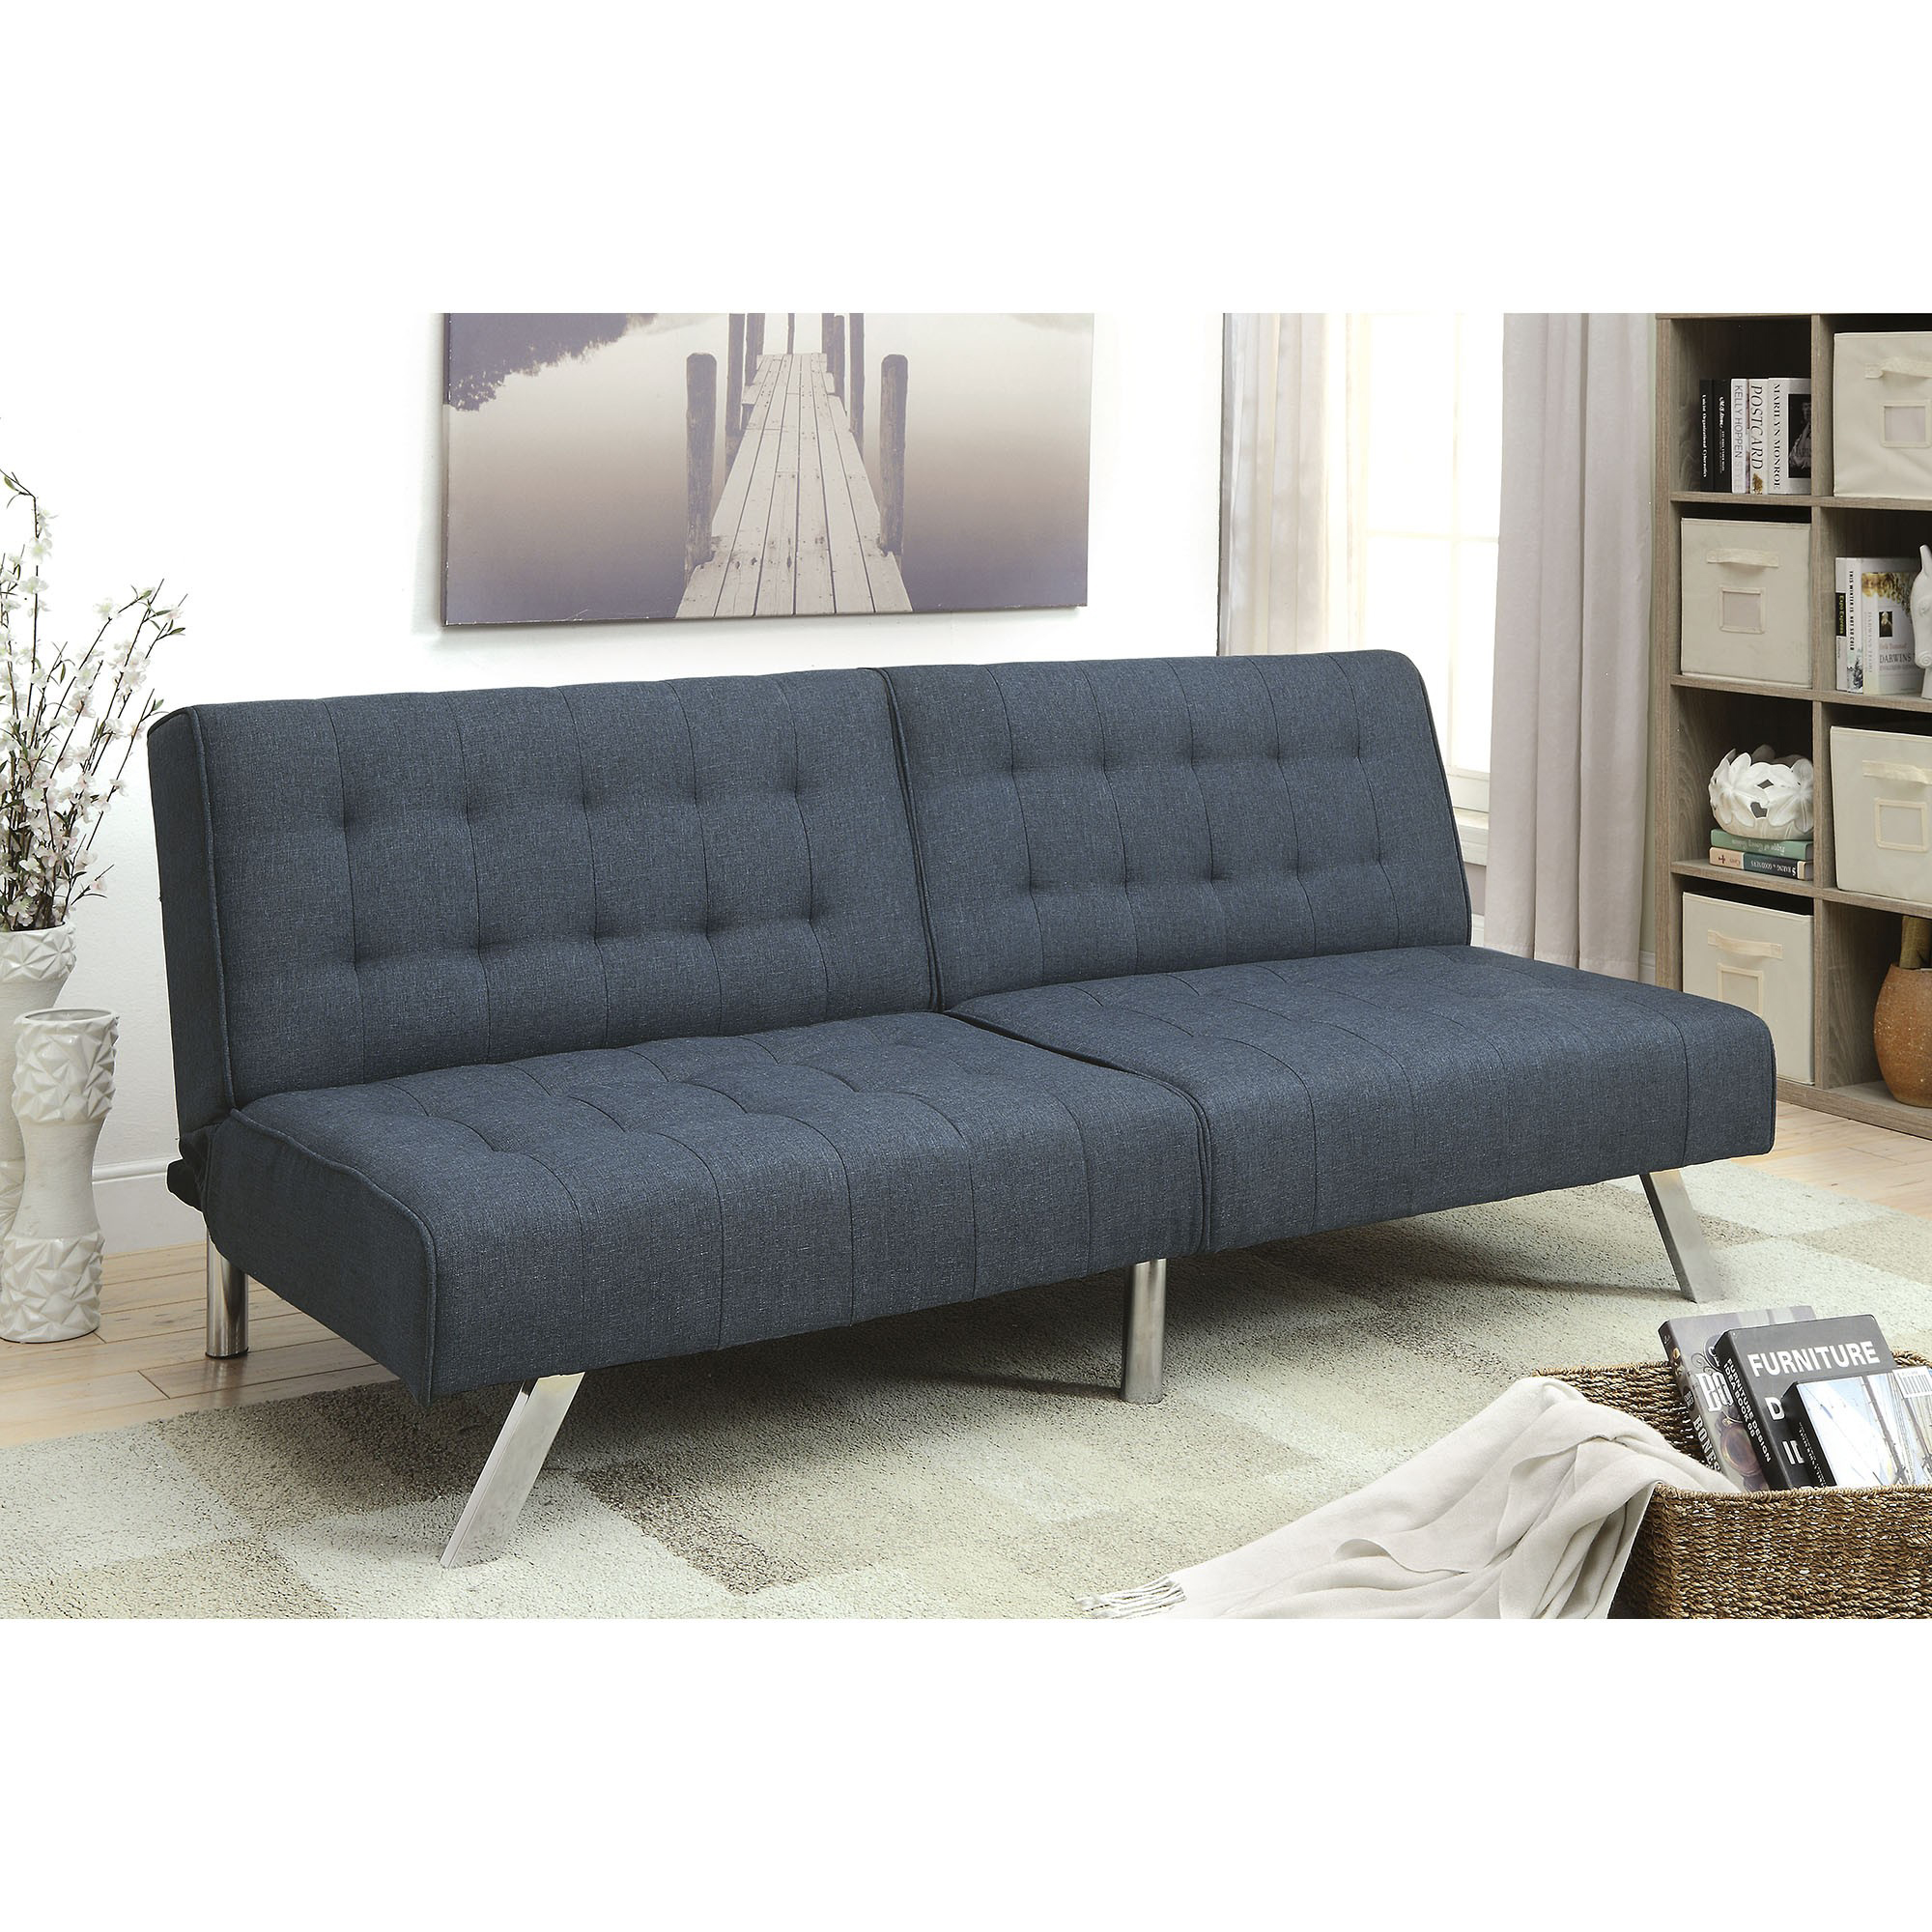 futon sofa jackson camel abbyson leather x couch free foldable bed